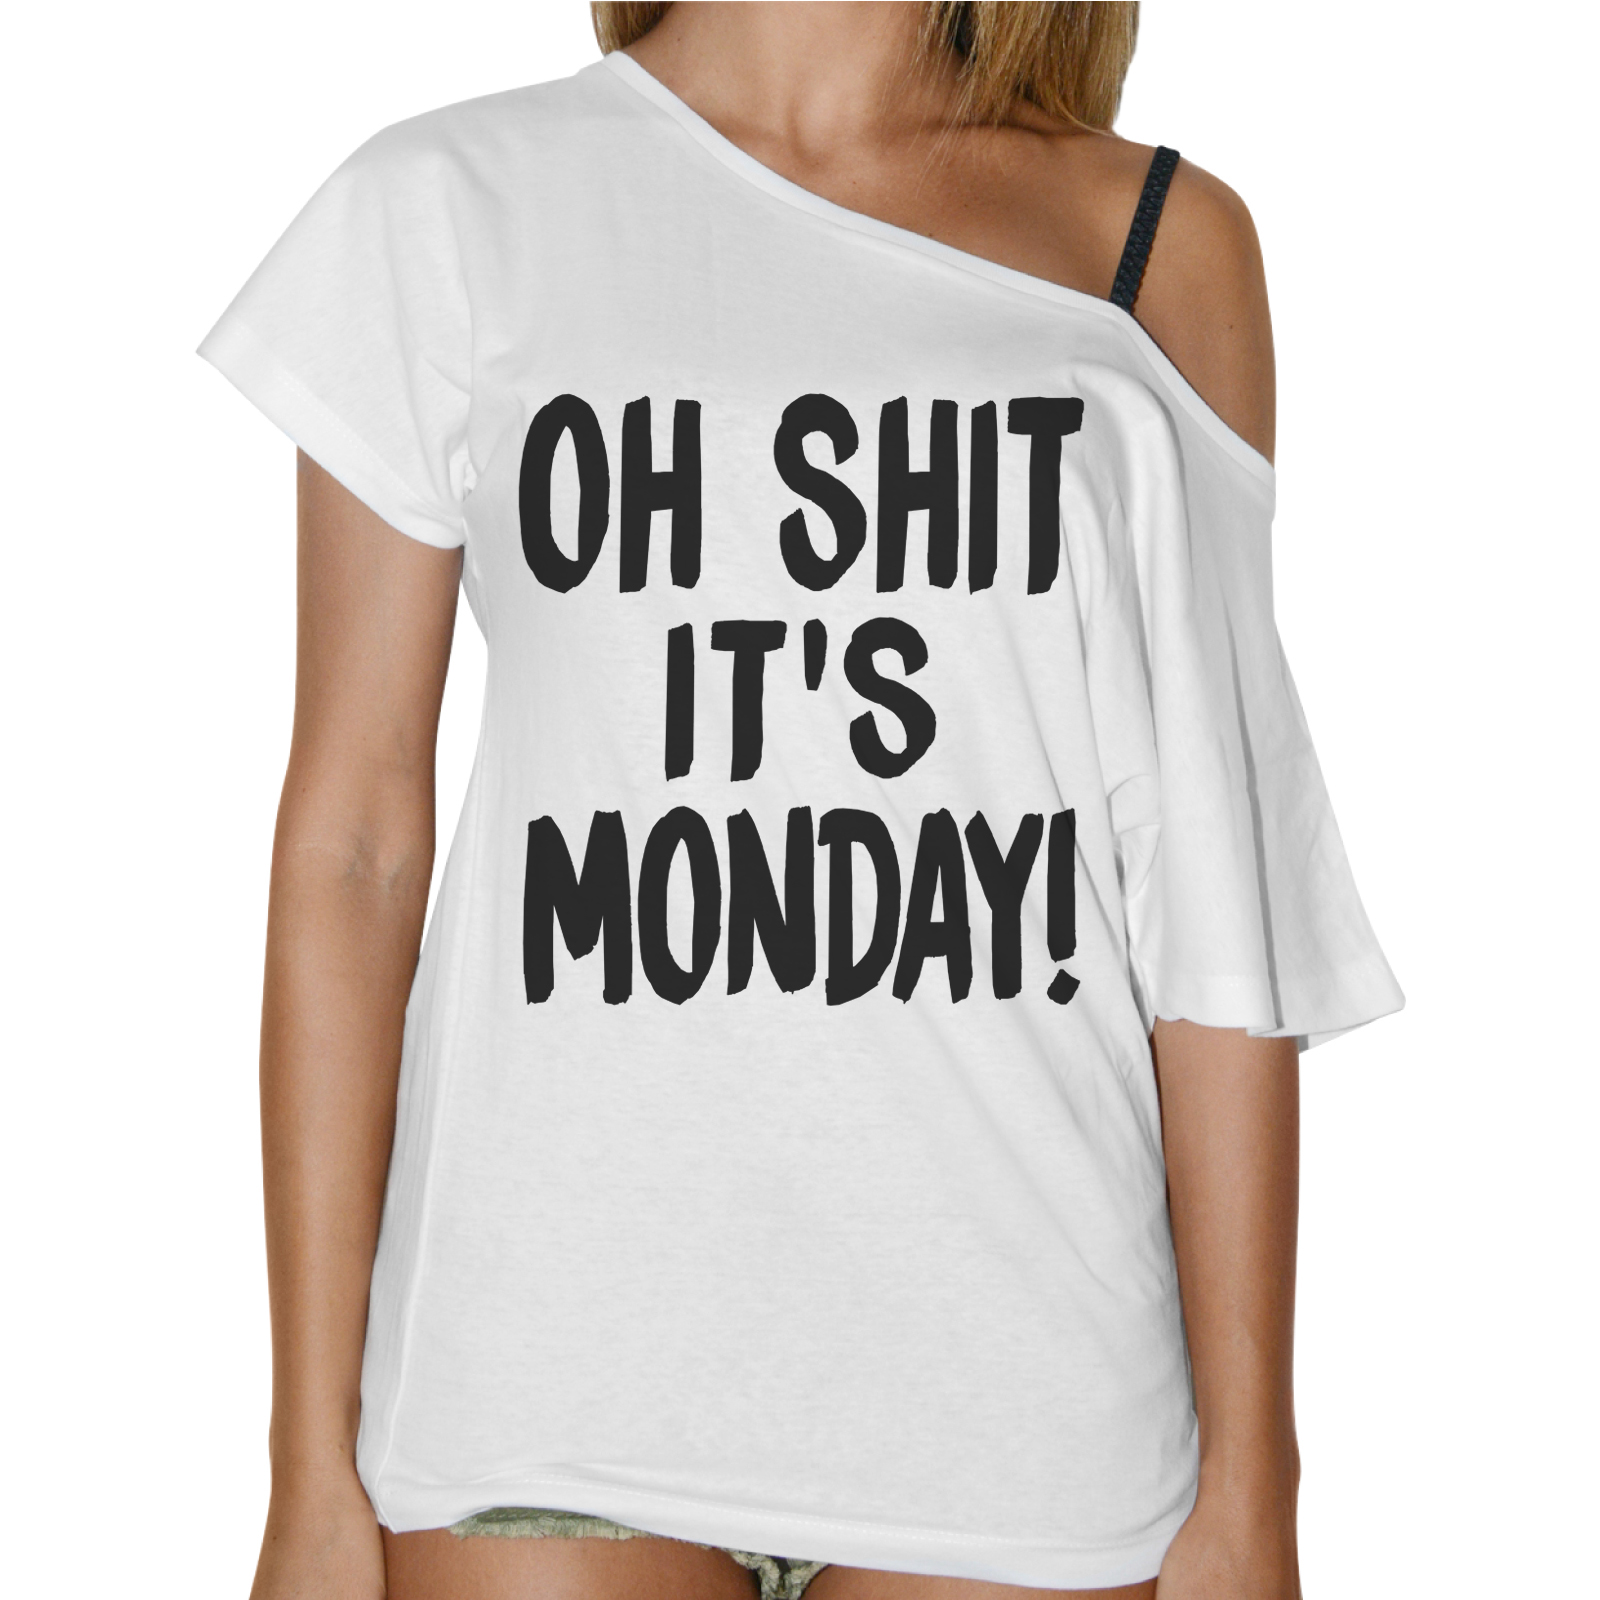 T-Shirt Donna Collo Barca SHIT IT'S MONDAY